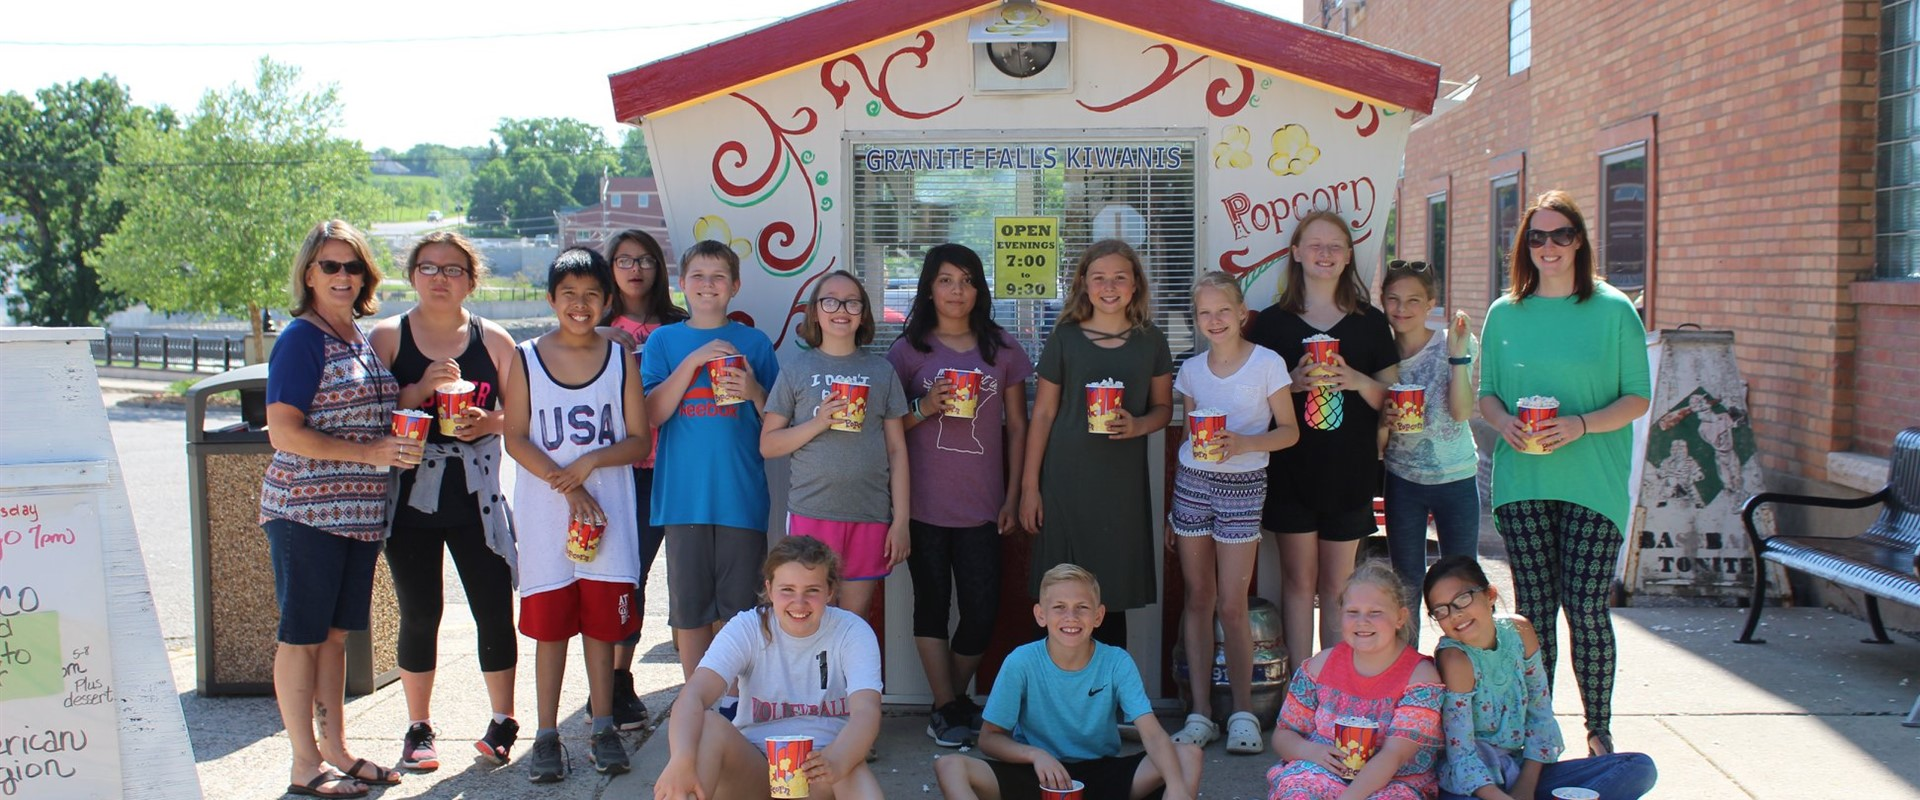 Mrs. Paslawski's class enjoying a treat from the infamous Kiwanis Popcorn Stand!